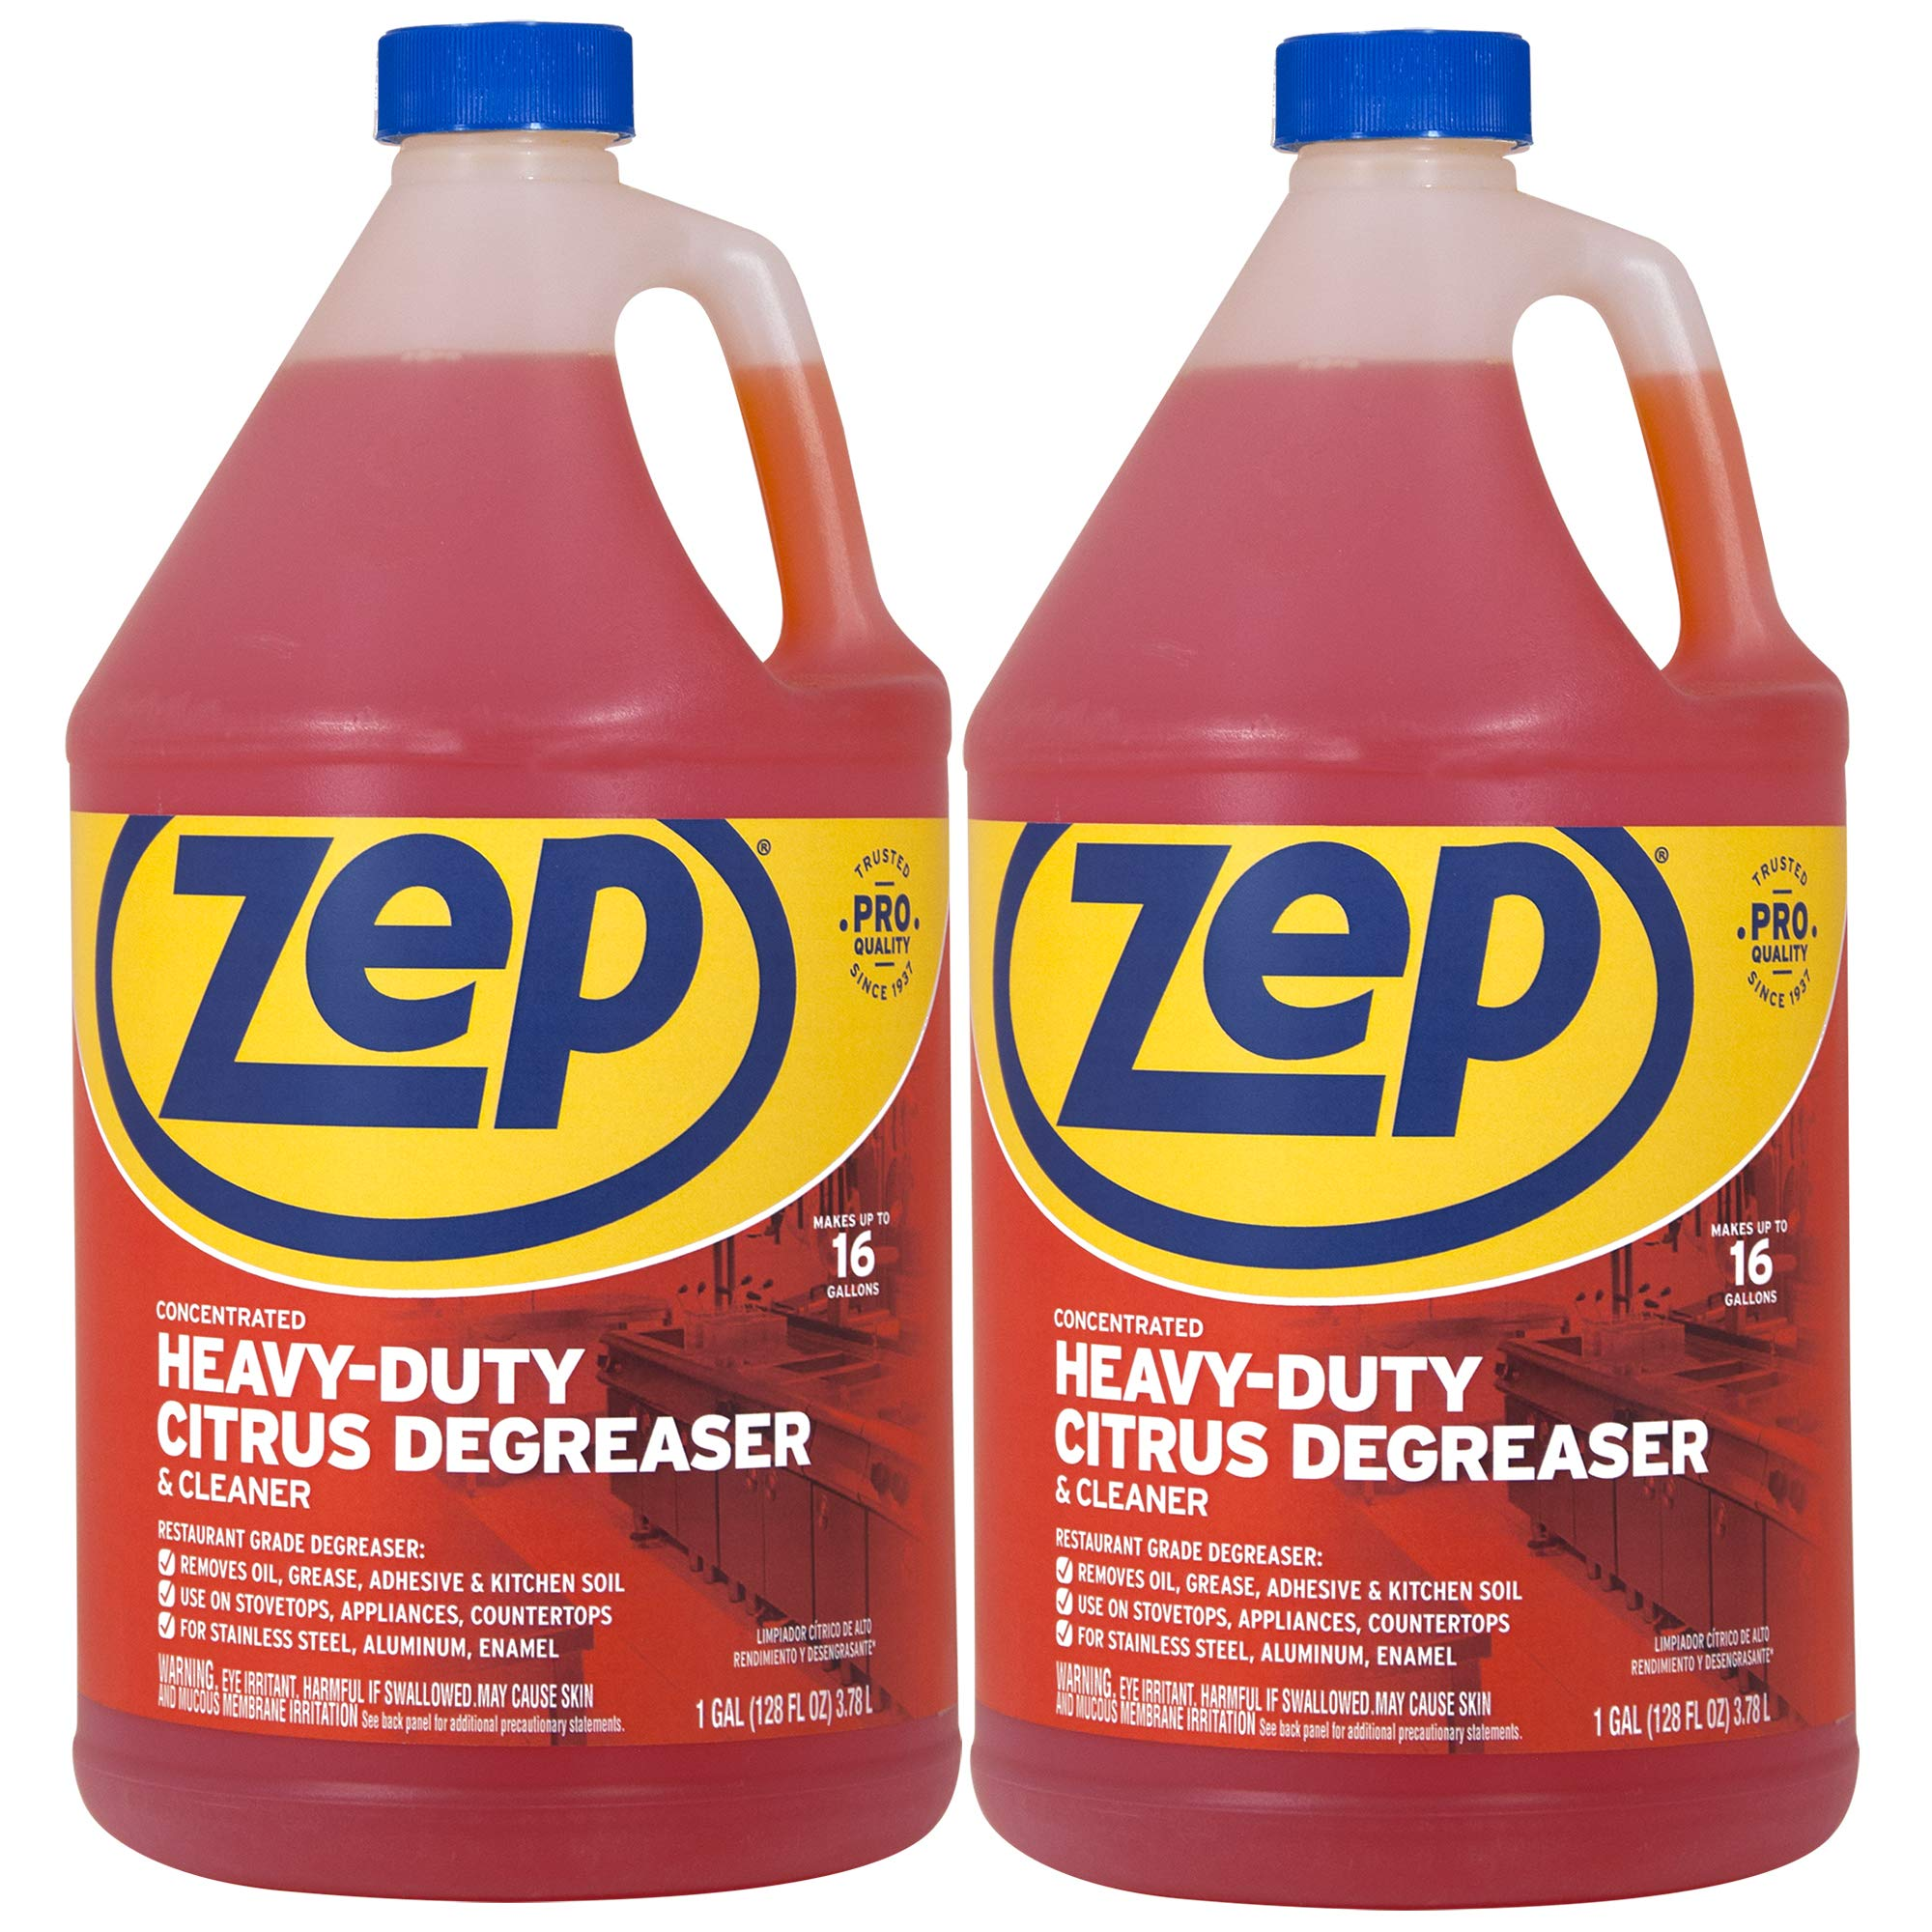 Zep Citrus Heavy-Duty Degreaser and Cleaner ZUCIT128 128 ounce (Pack of 2) Not for Sale in California